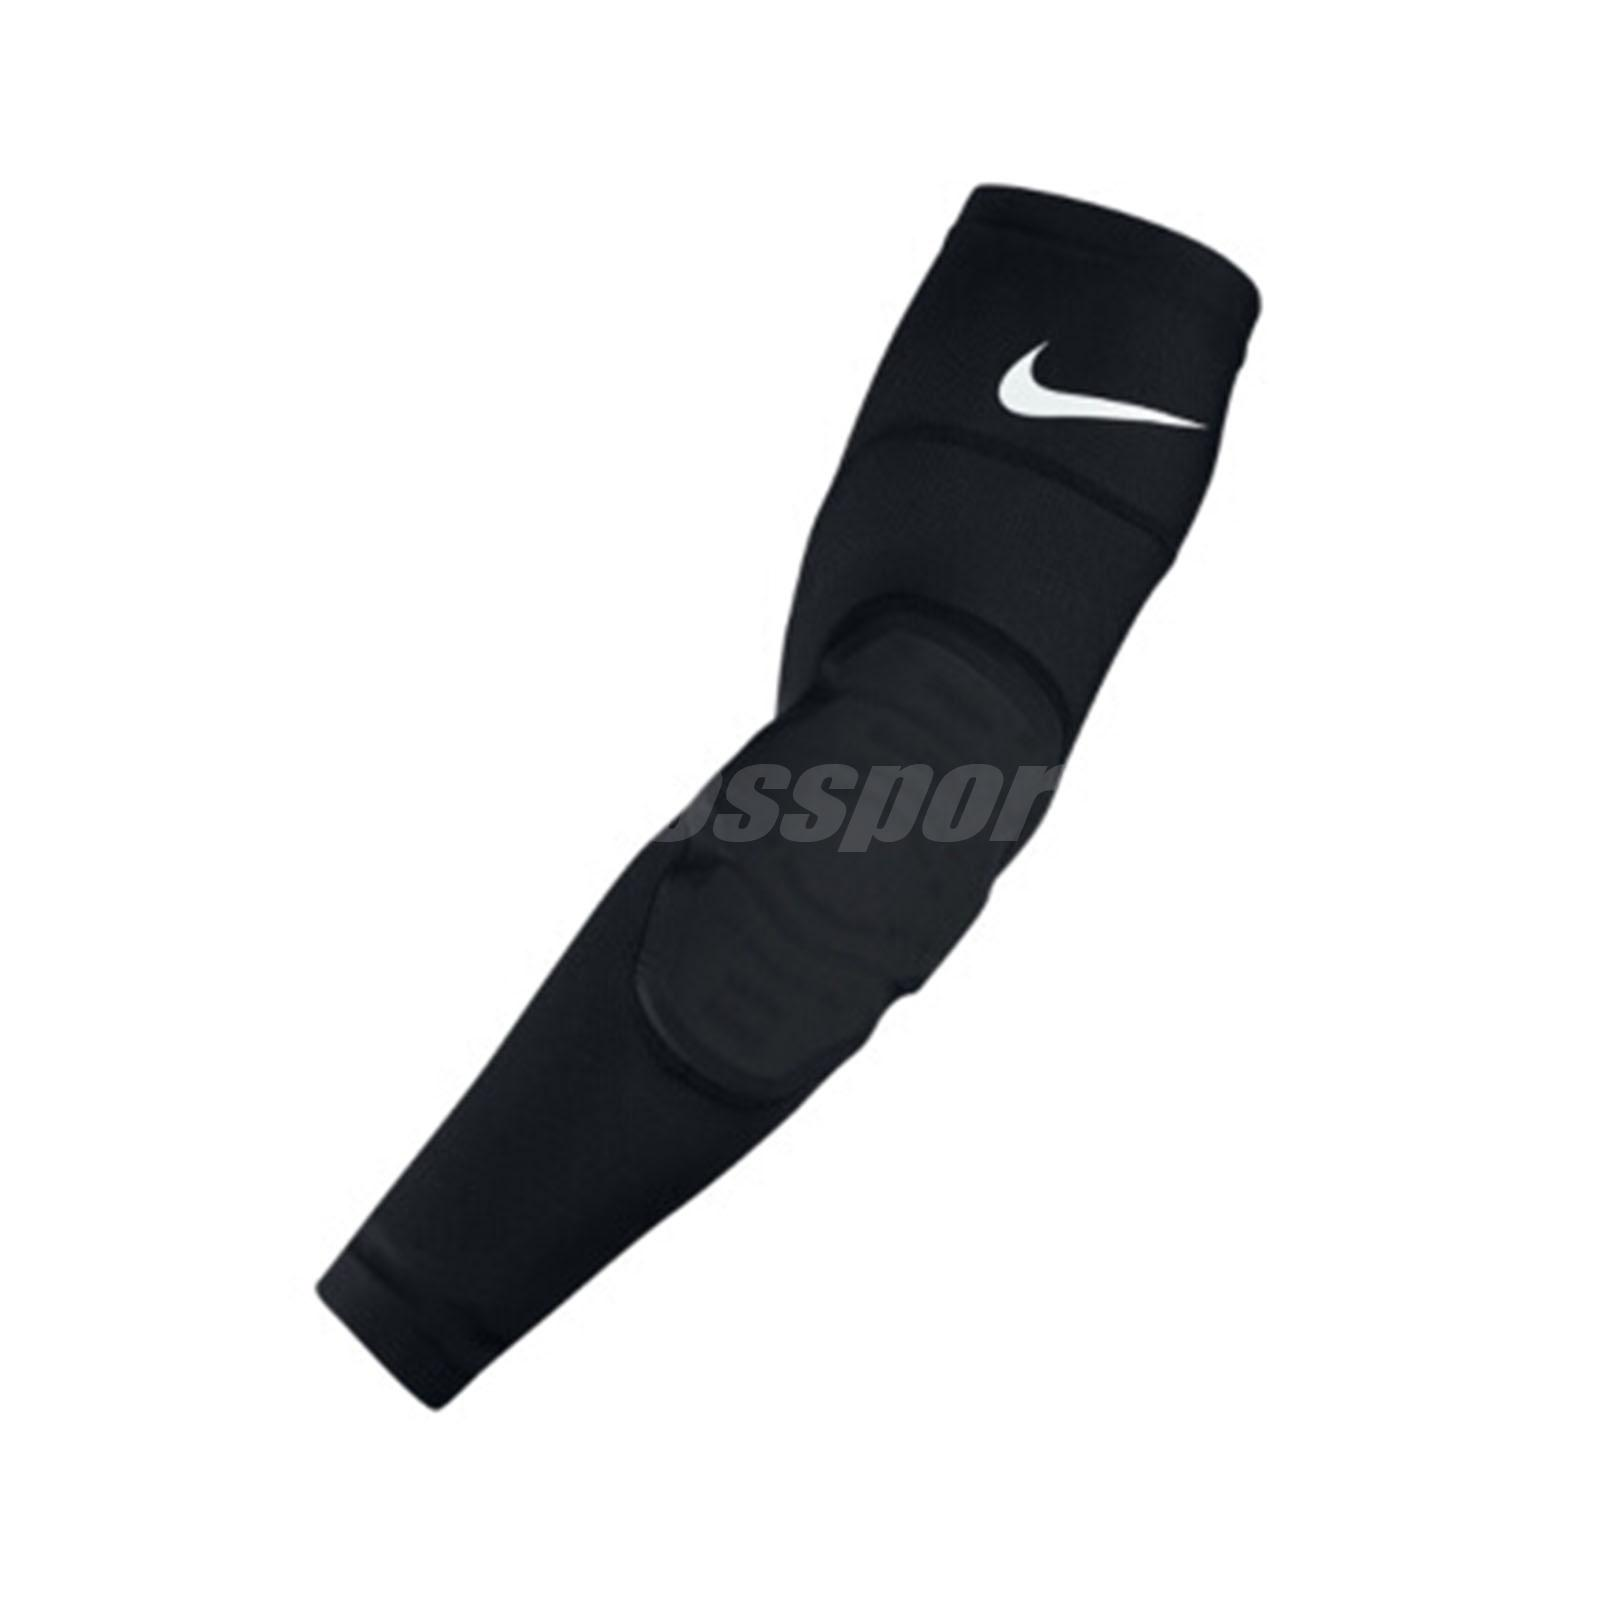 478eb8c1 Details about Nike Pro Hyperstrong Padded Elbow Sleeve Shooter NBA Arm  Armsleeve Basketball